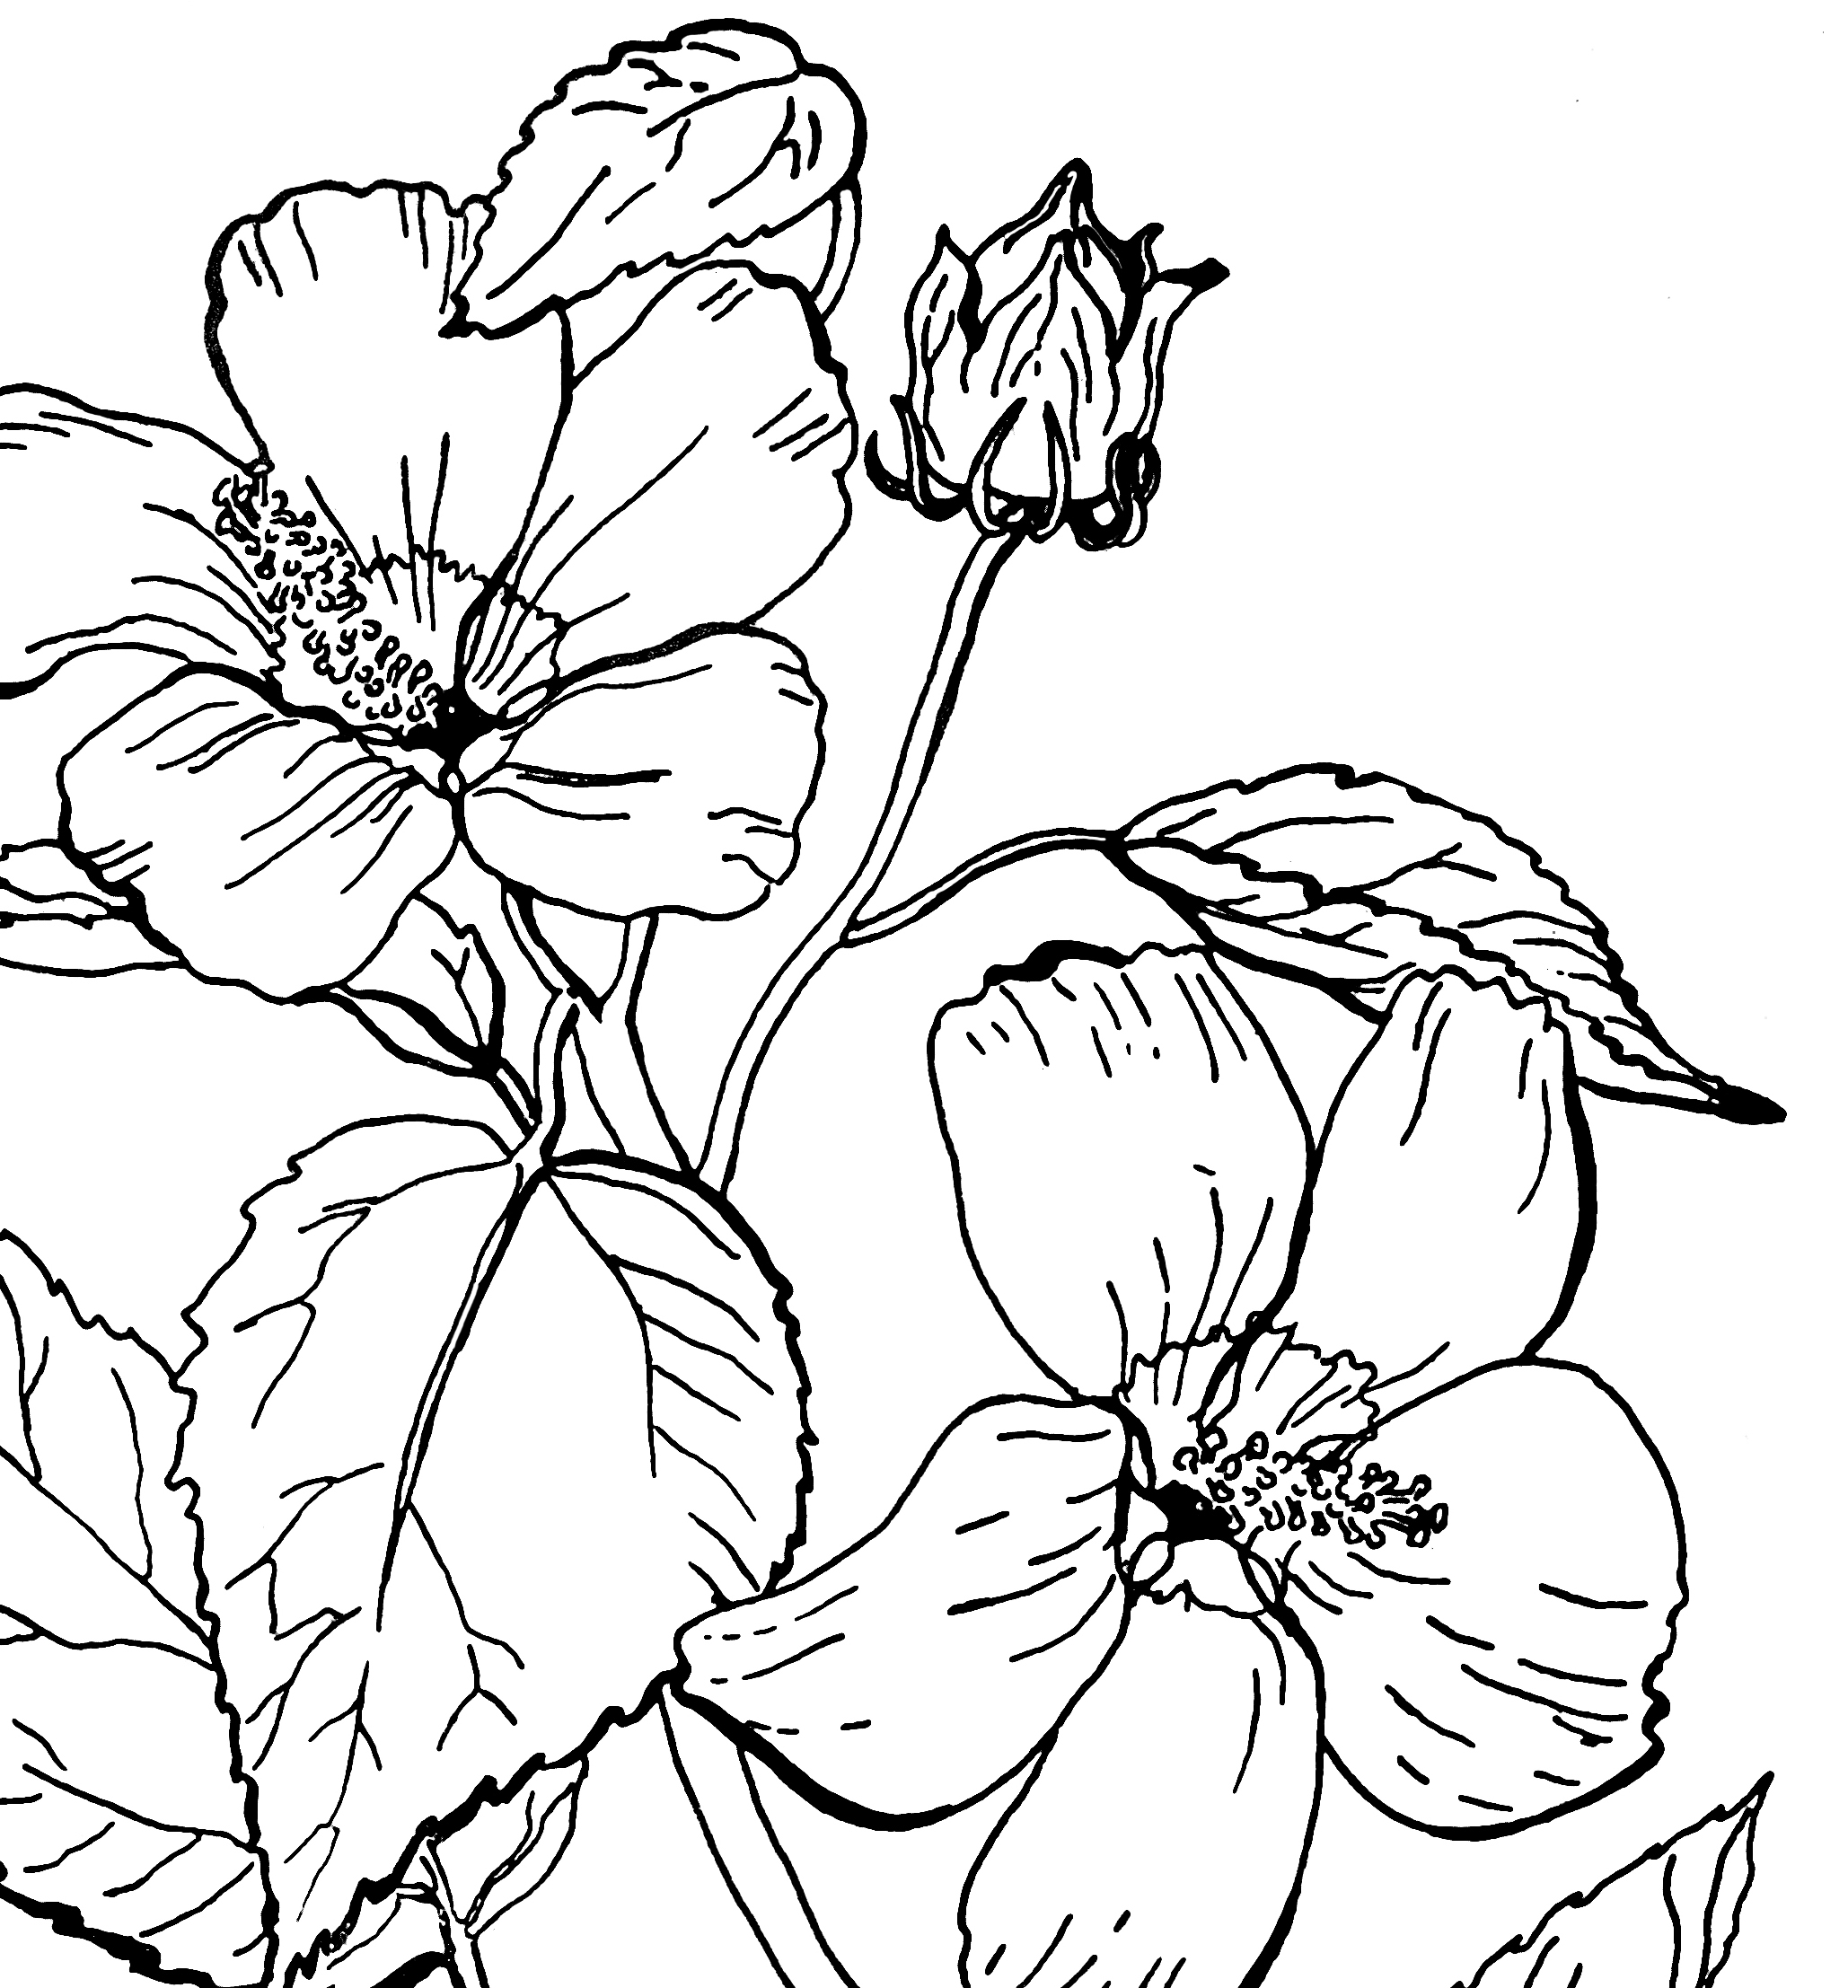 rose garden coloring page free roses printable adult coloring page the graphics fairy page rose coloring garden